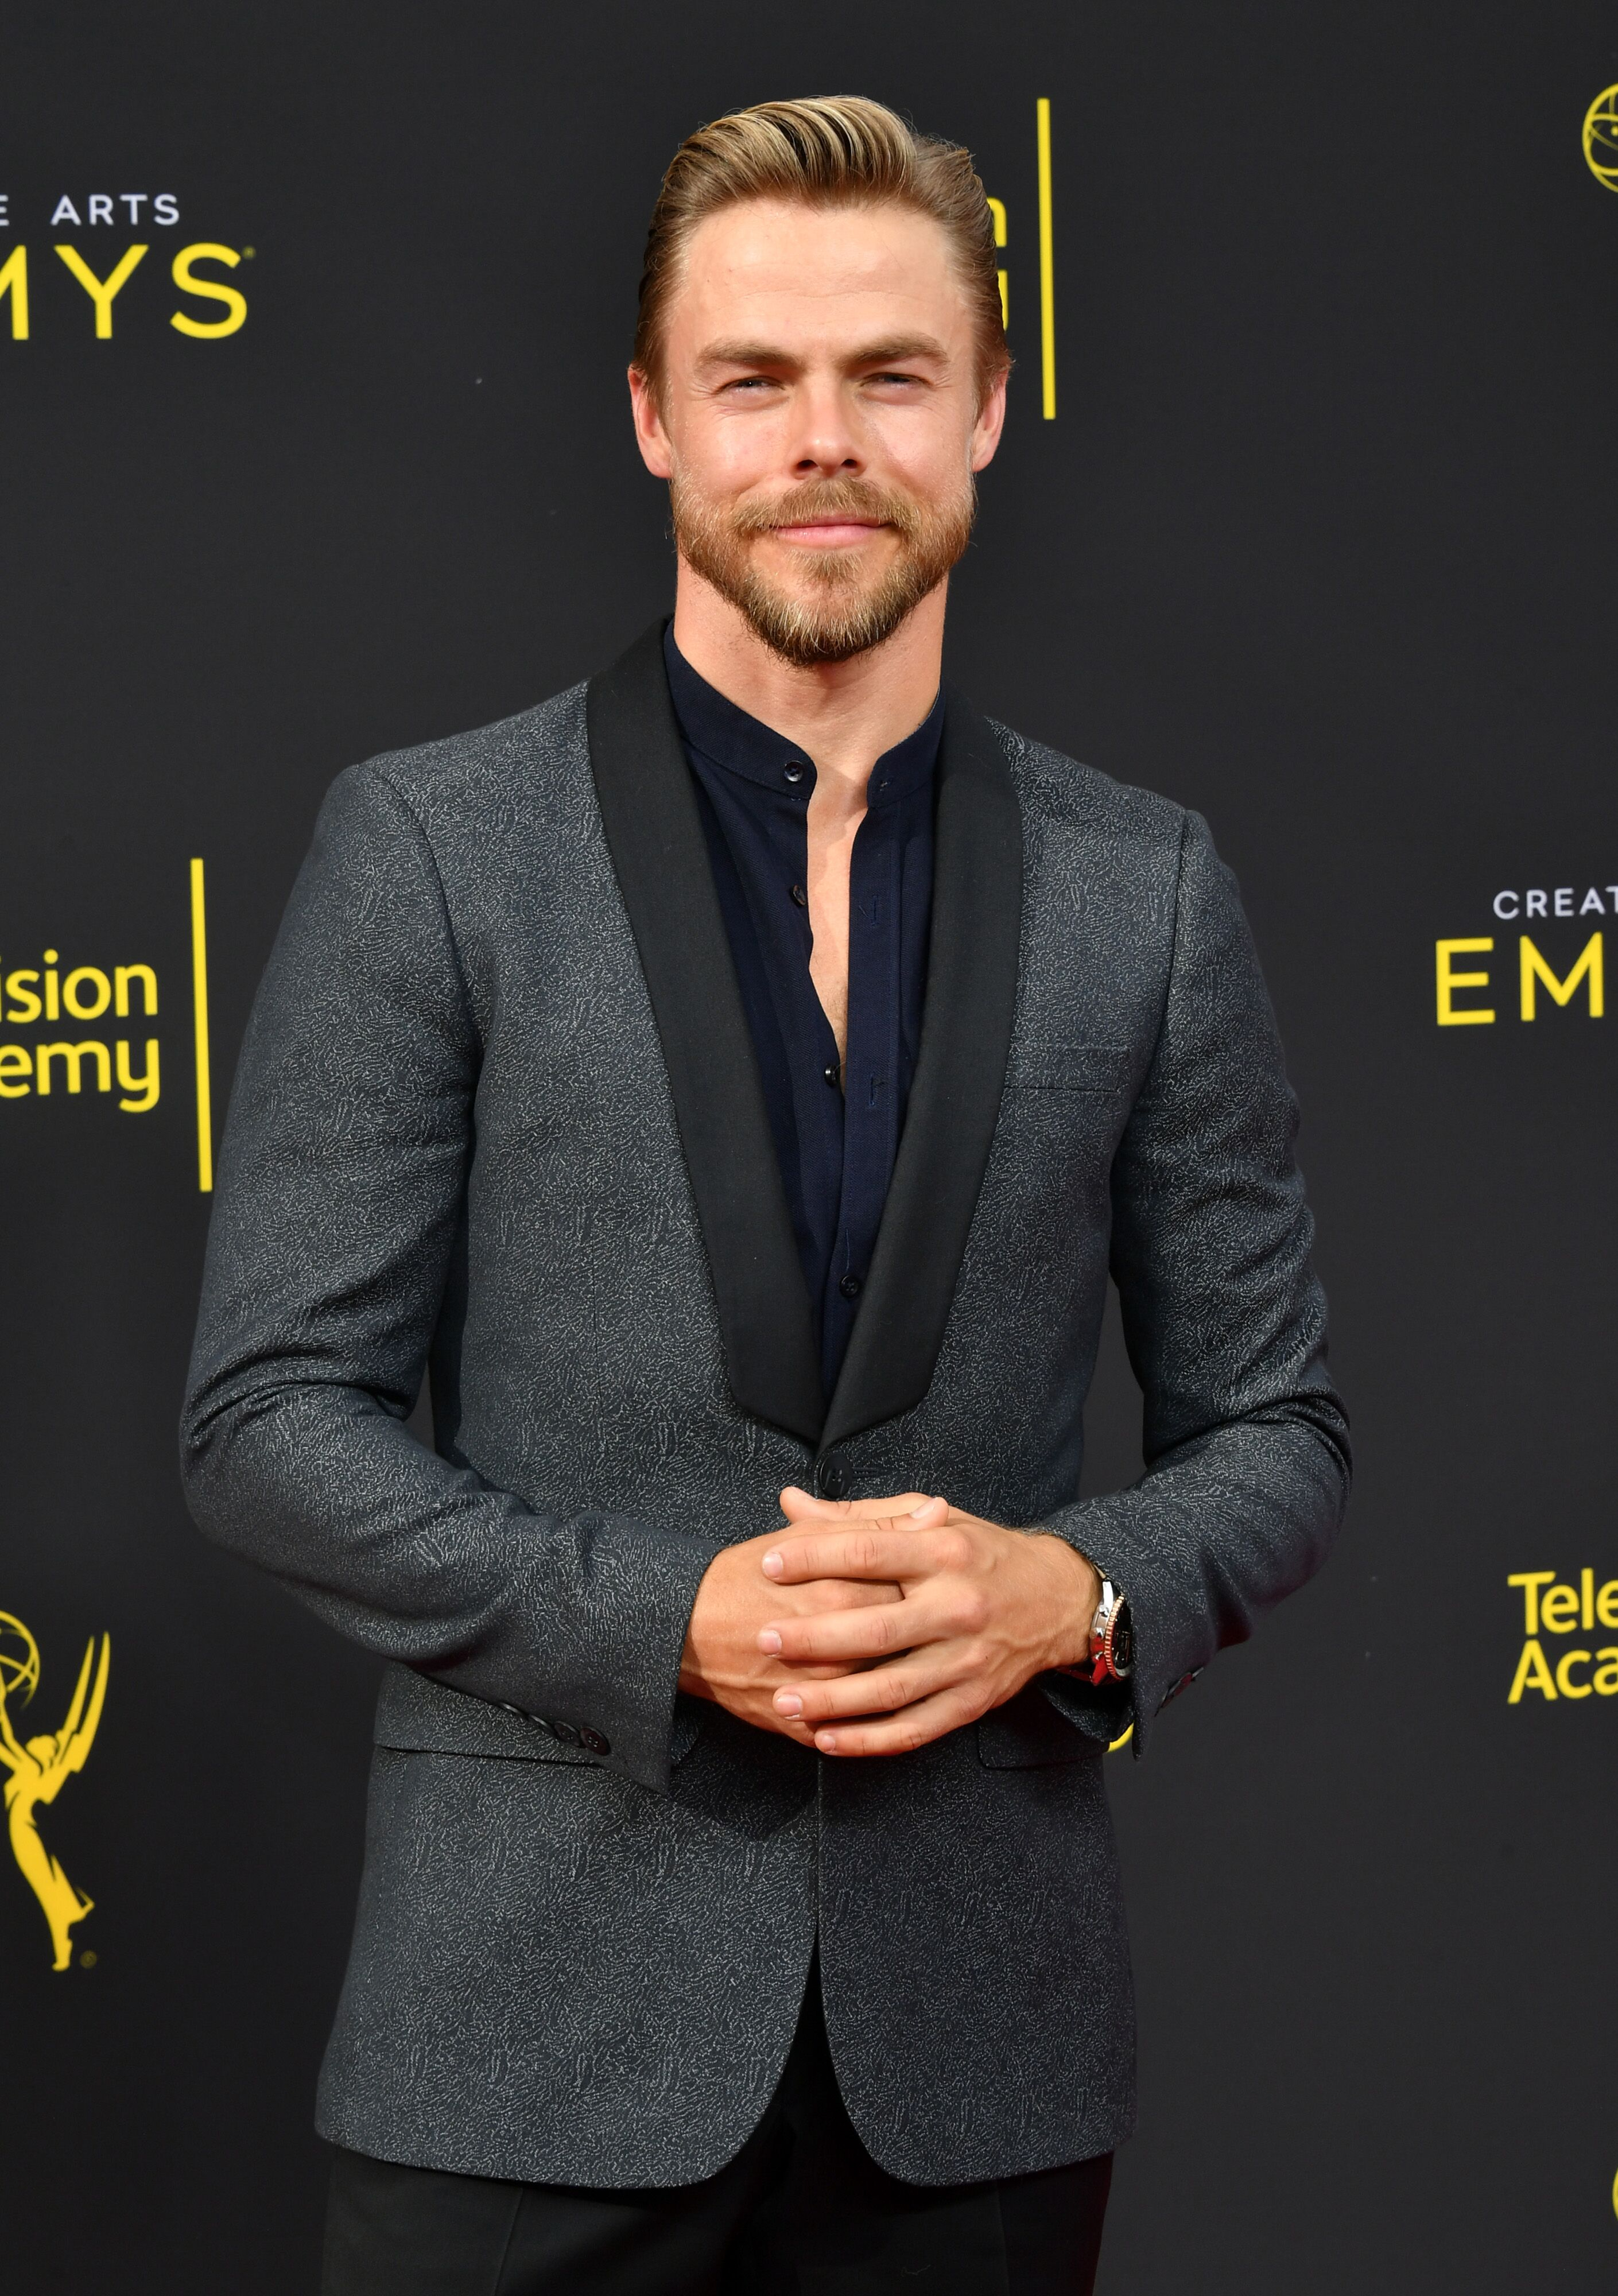 Derek Hough at the Creative Arts Emmy Awards on September 14, 2019, in Los Angeles, California | Photo: Amy Sussman/Getty Images